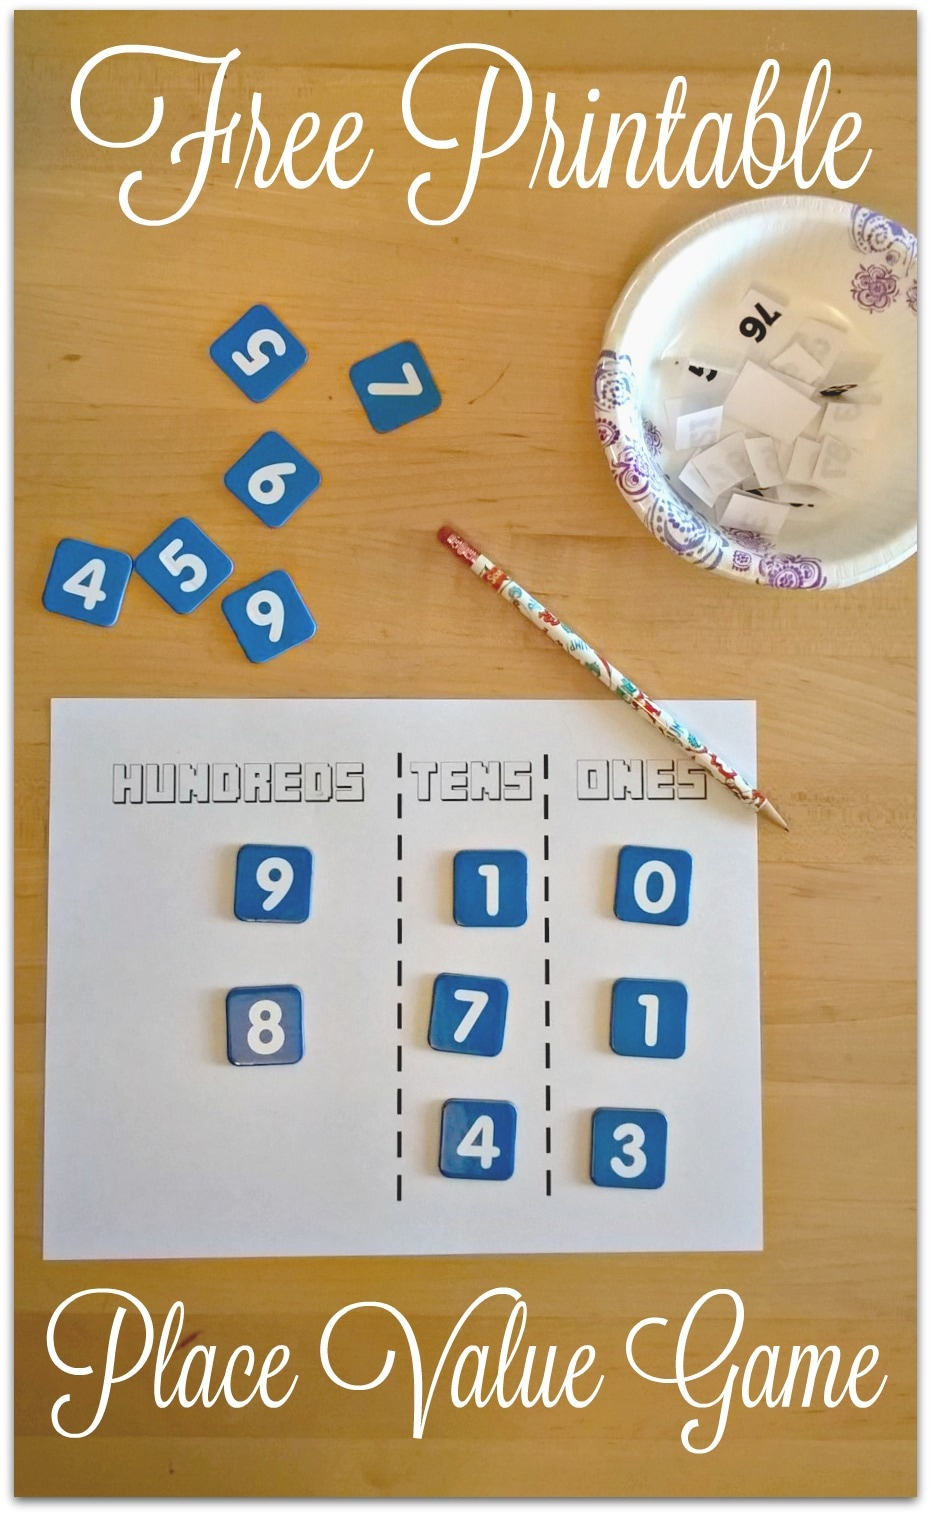 Free Printable Place Value Game - Place Value Game Printable Free